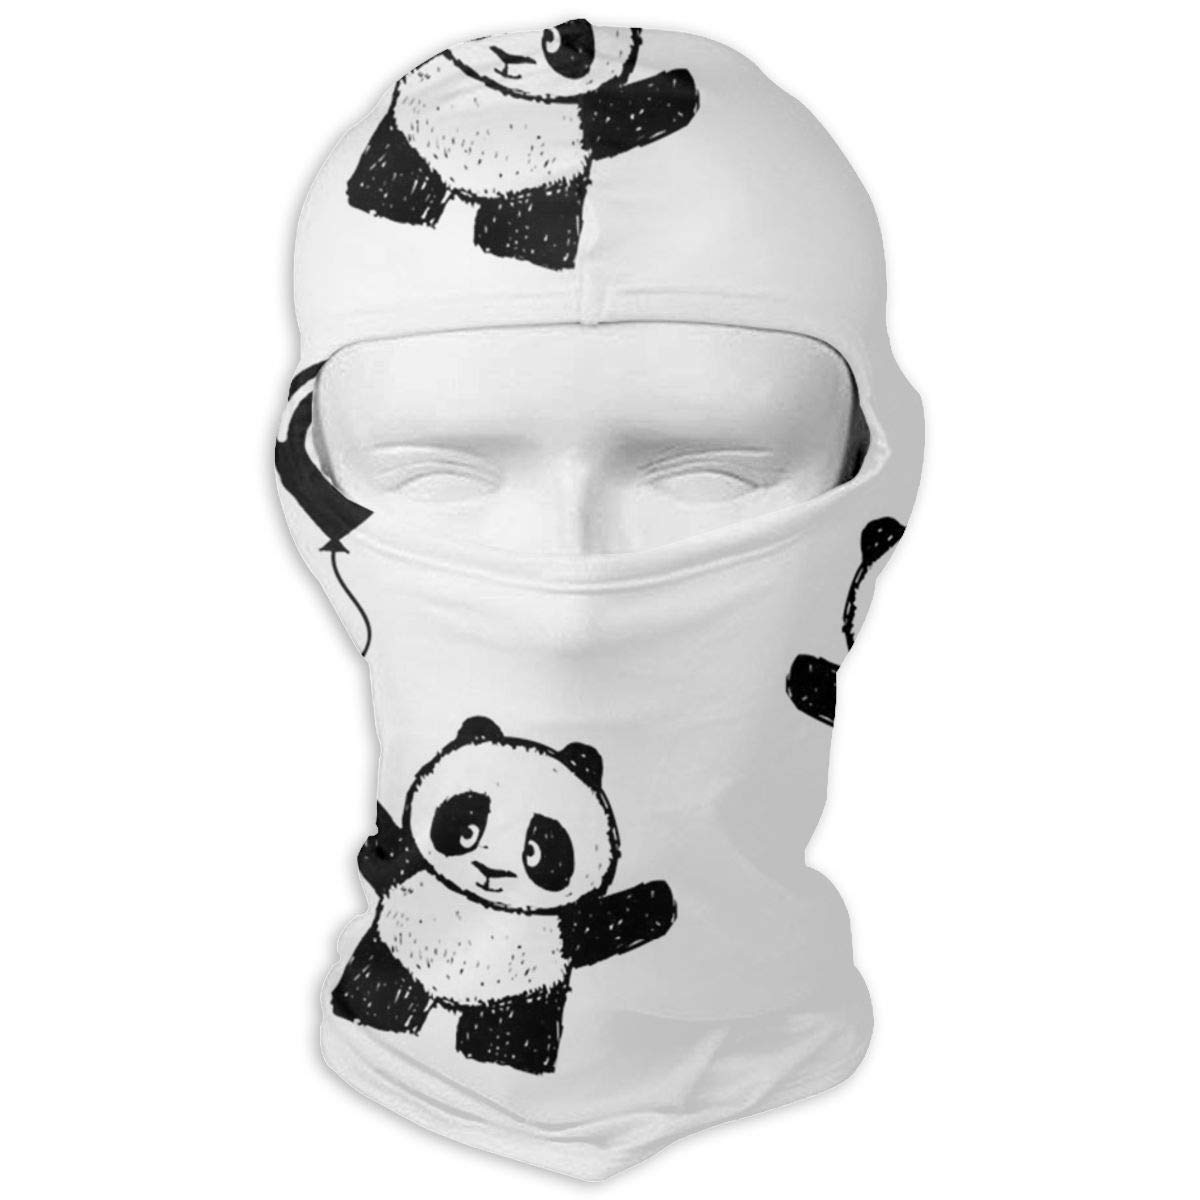 Ski Mask Panda Holding A Balloon Sun UV Protection Dust Protection Wind-Resistant Face Mask for Running Cycling Fishing Multicolor2 Ejdkdo